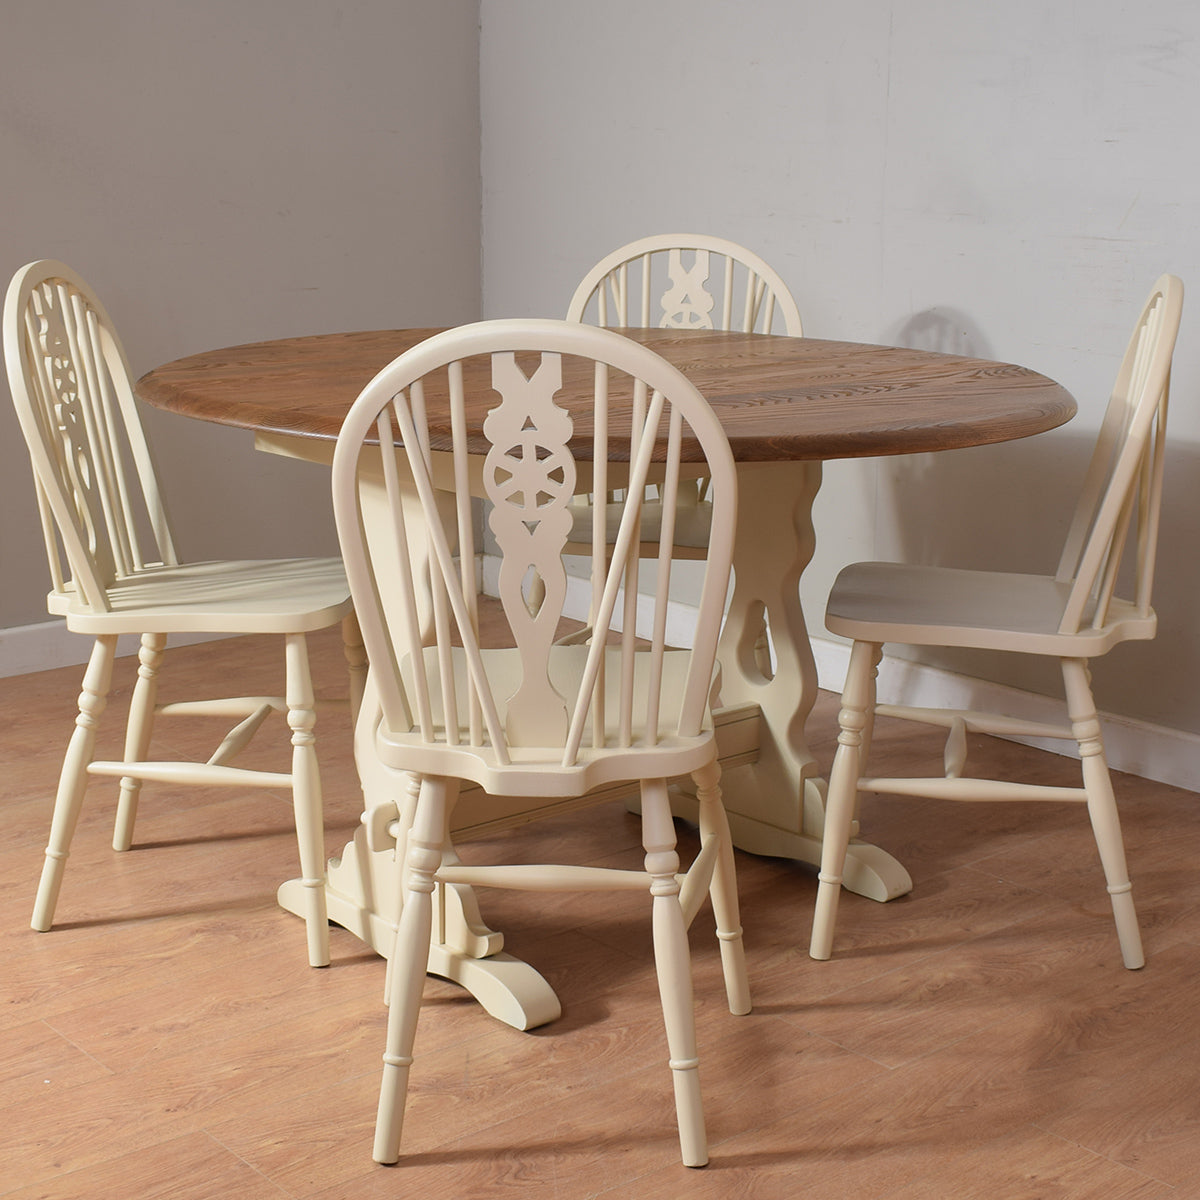 Painted Priory Table and 4 Chairs